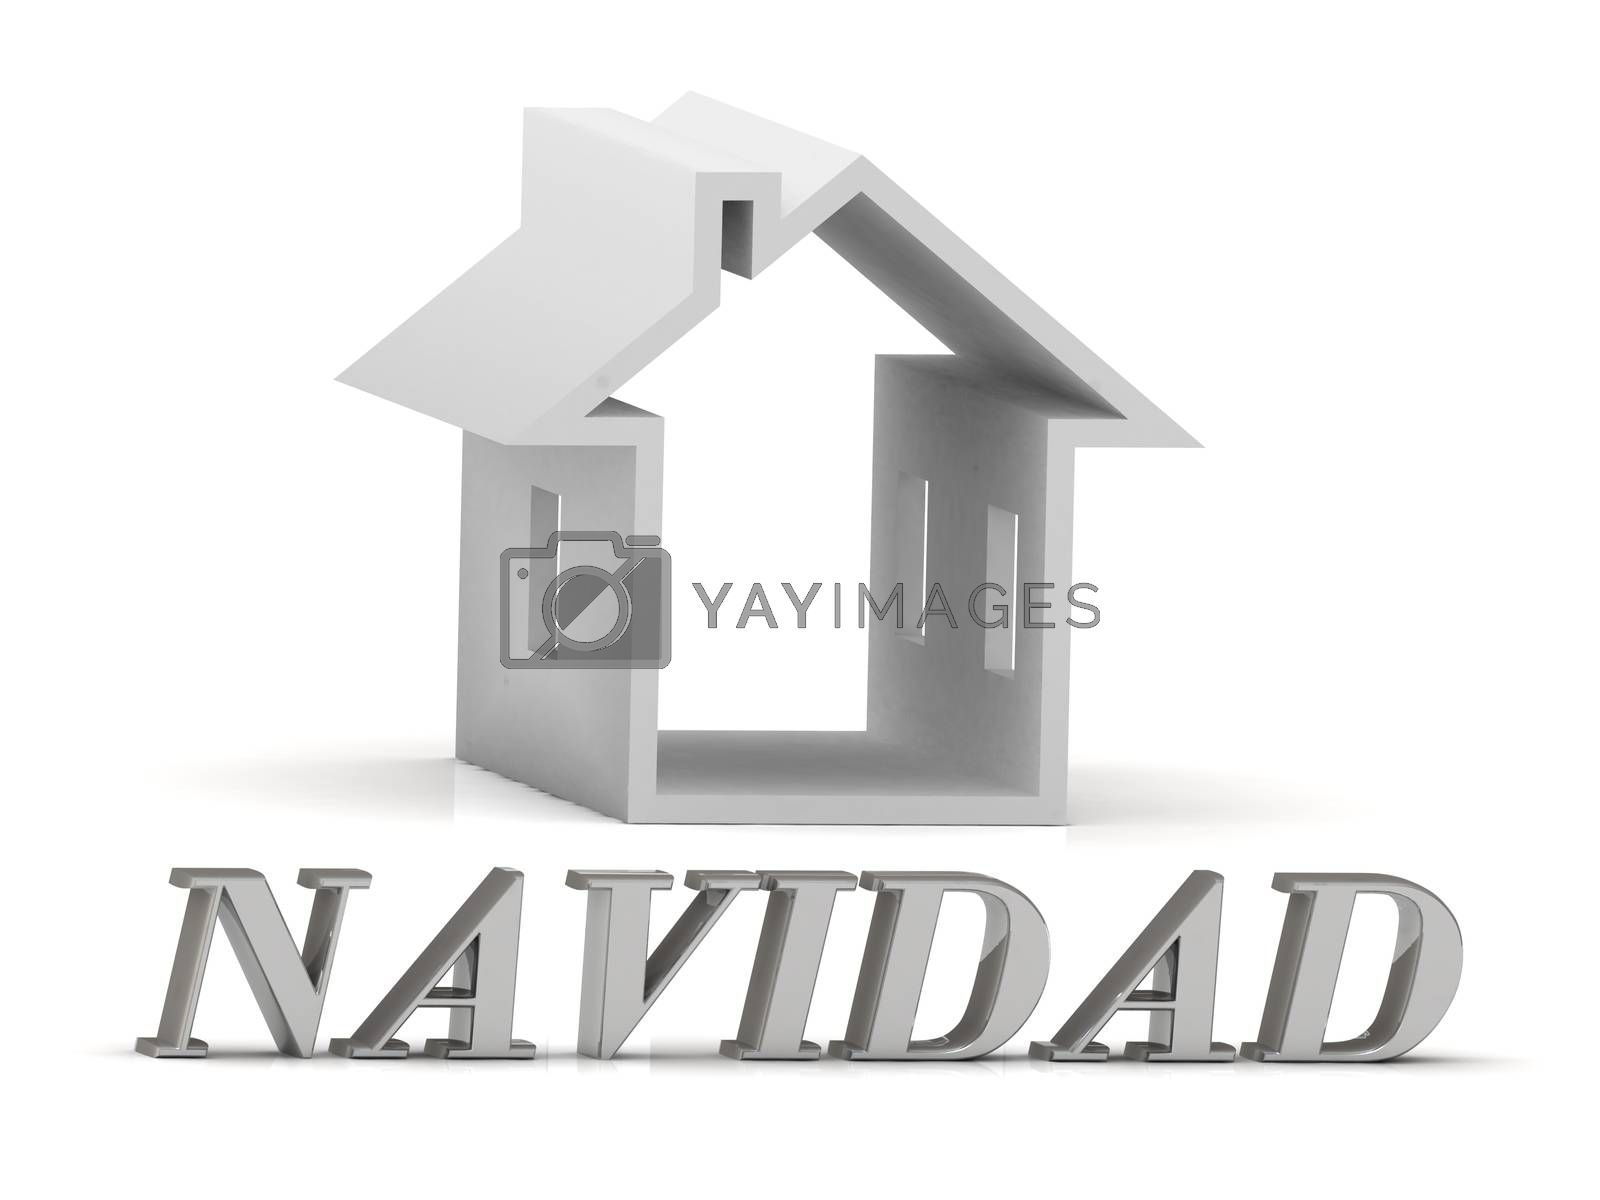 NAVIDAD- inscription of silver letters and white house on white background